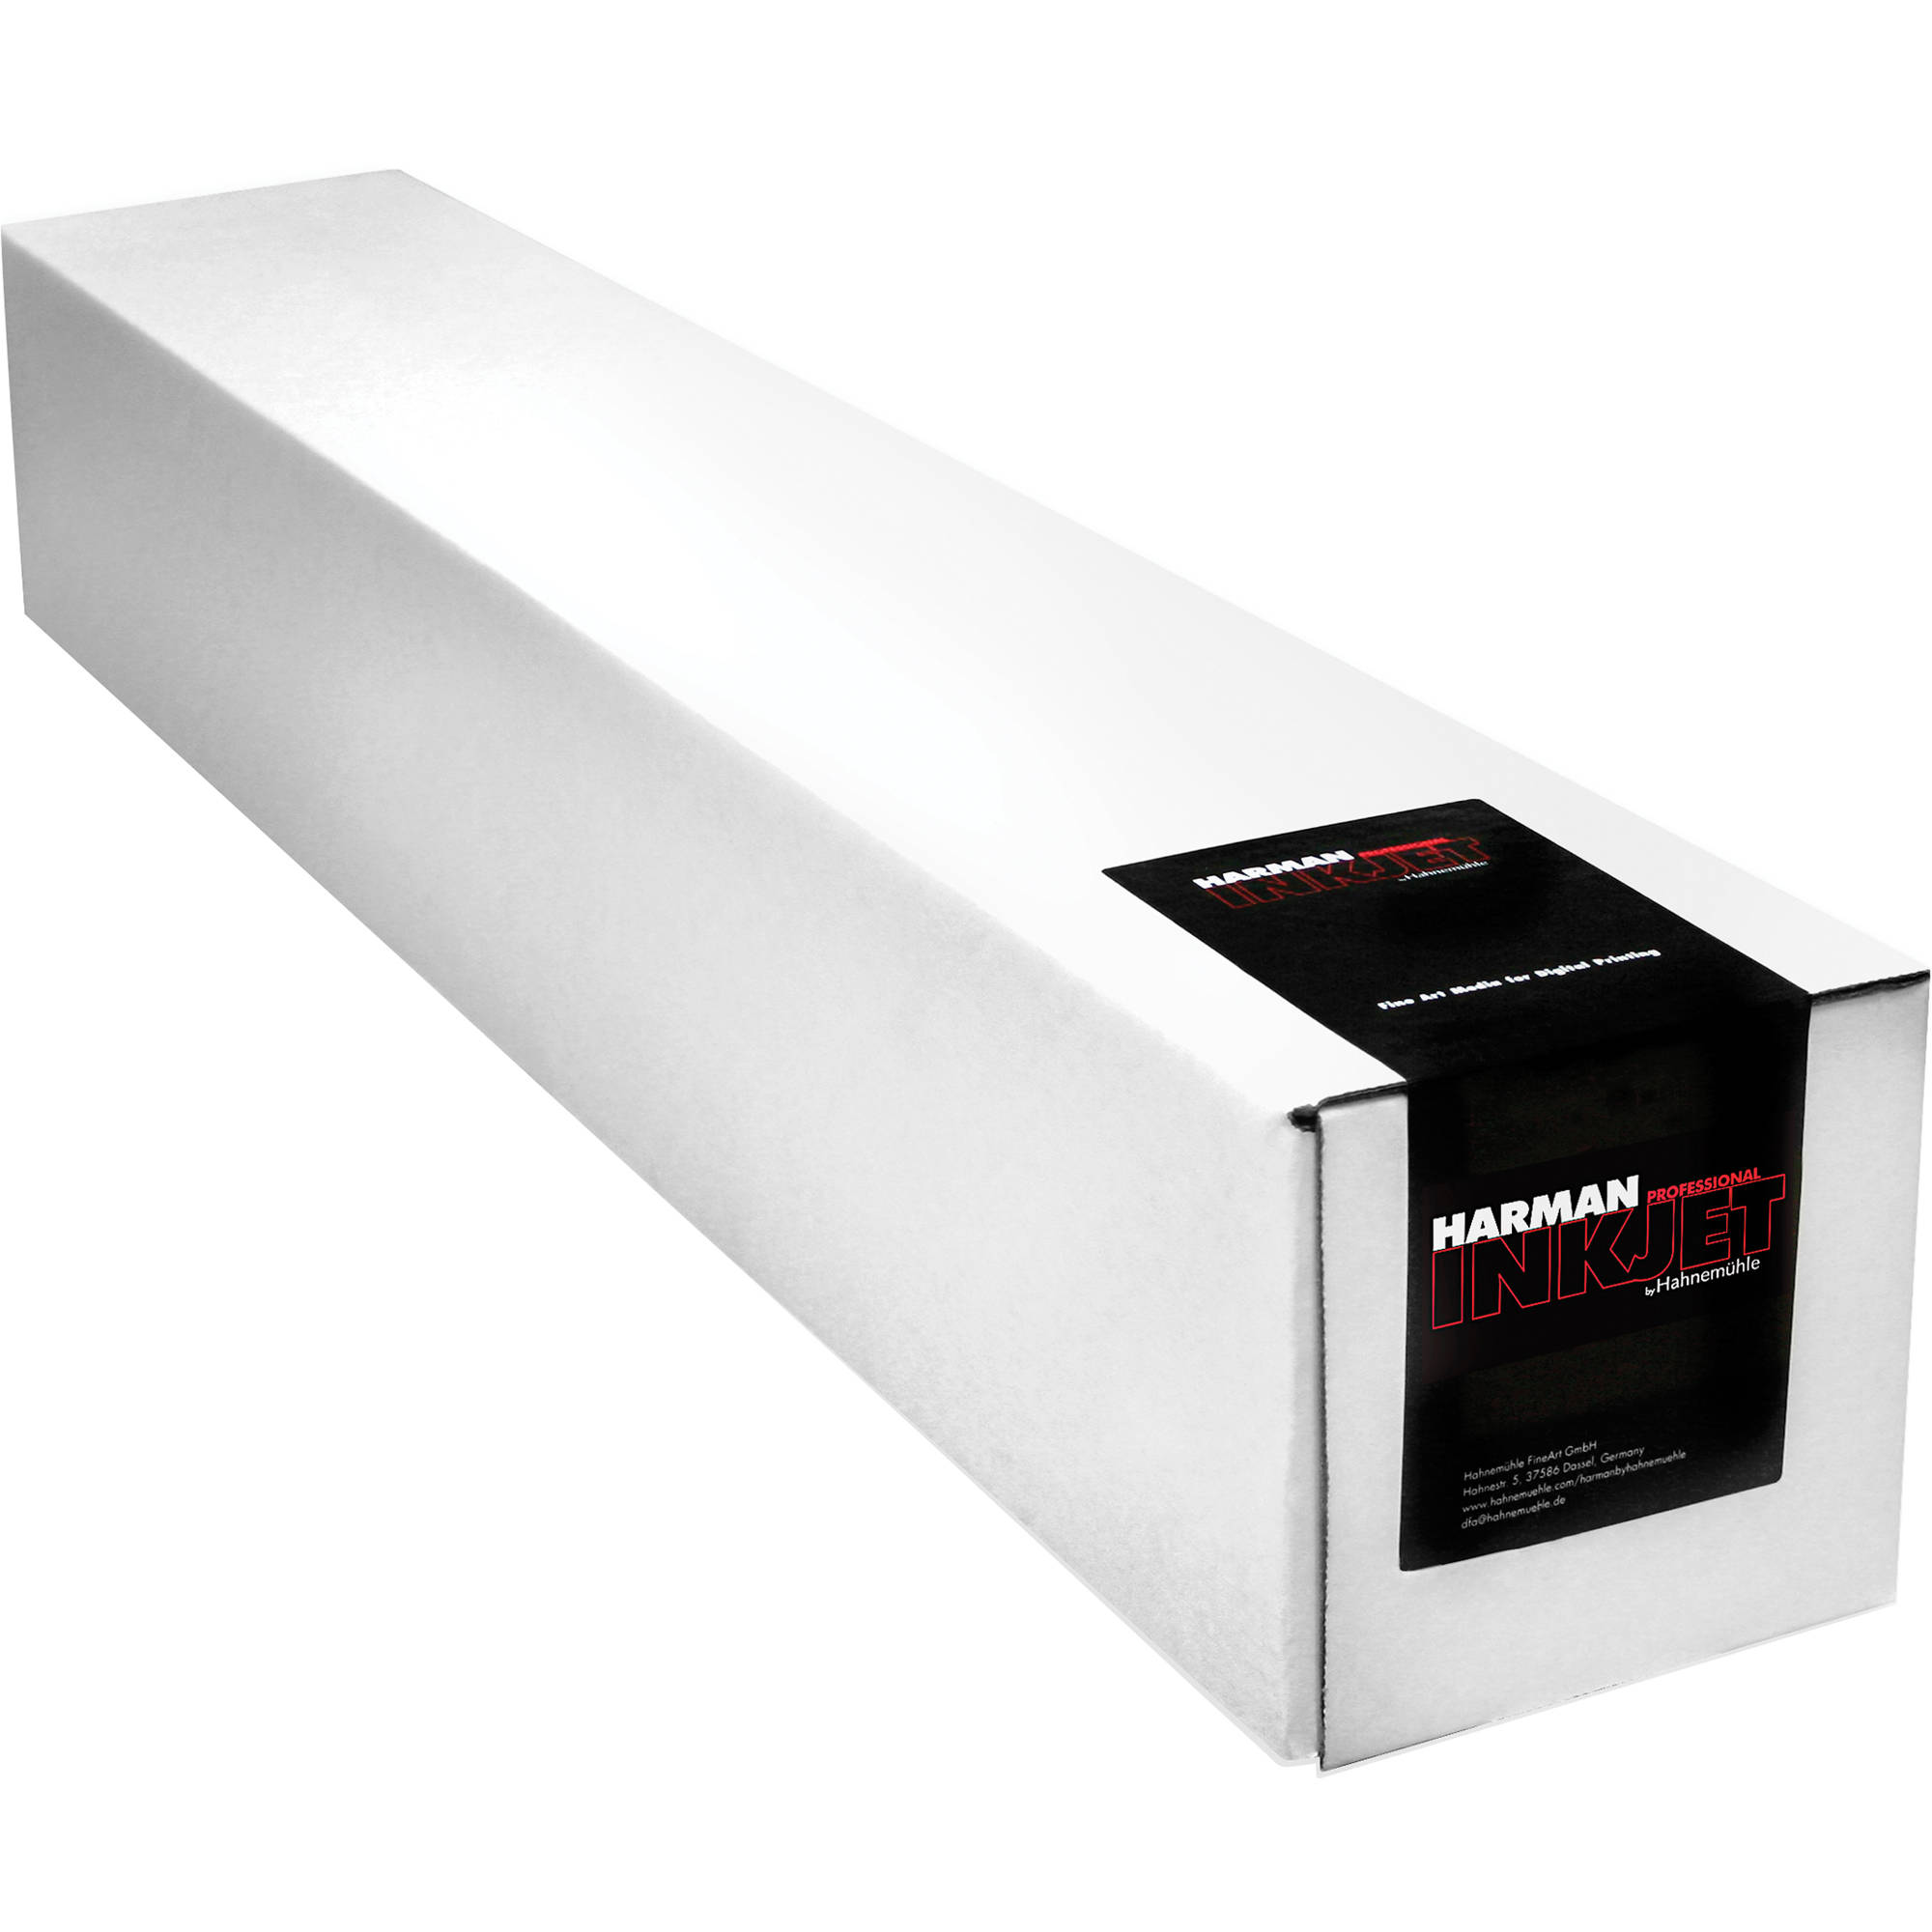 Harman By Hahnemuhle Canvas Archival Inkjet Paper 10646025 Bh